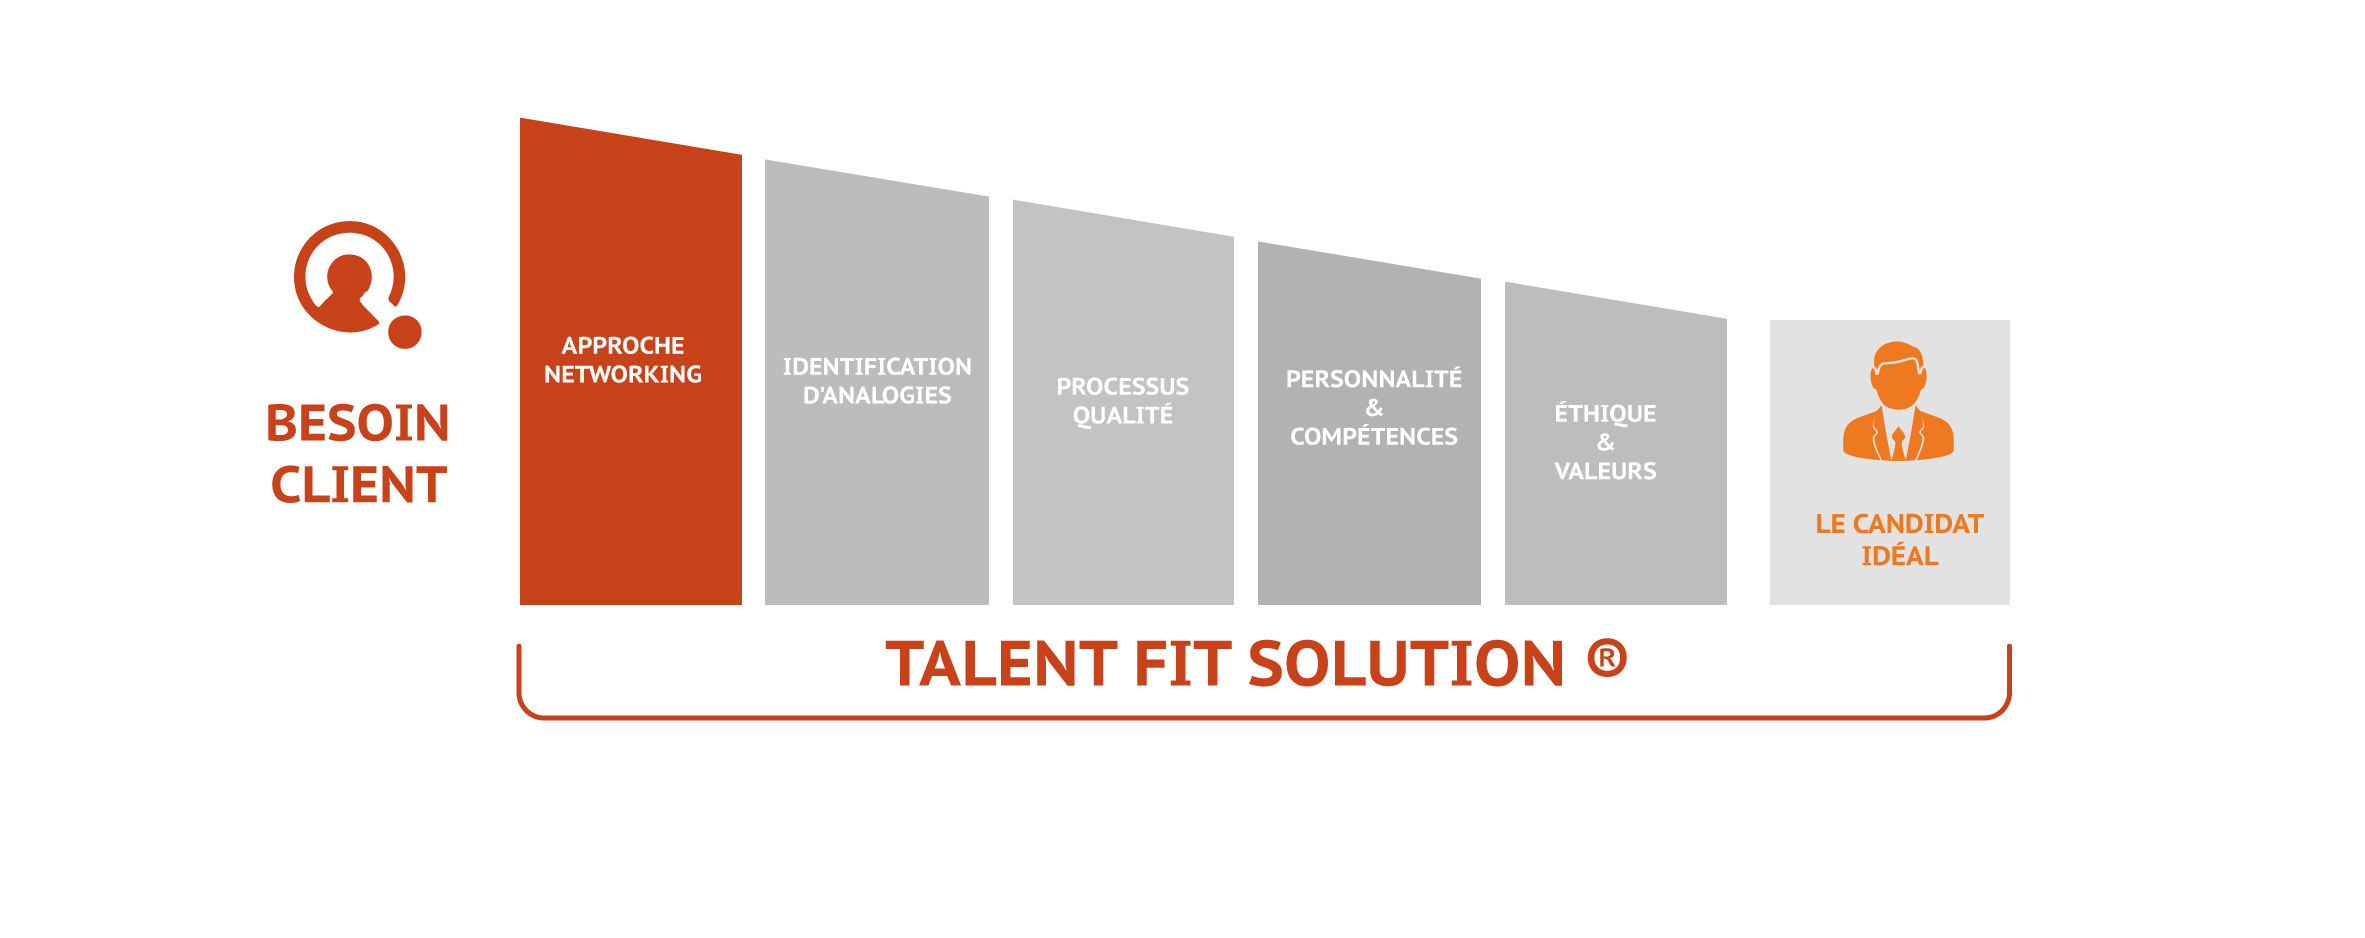 Approche Networking Talent Fit Solution